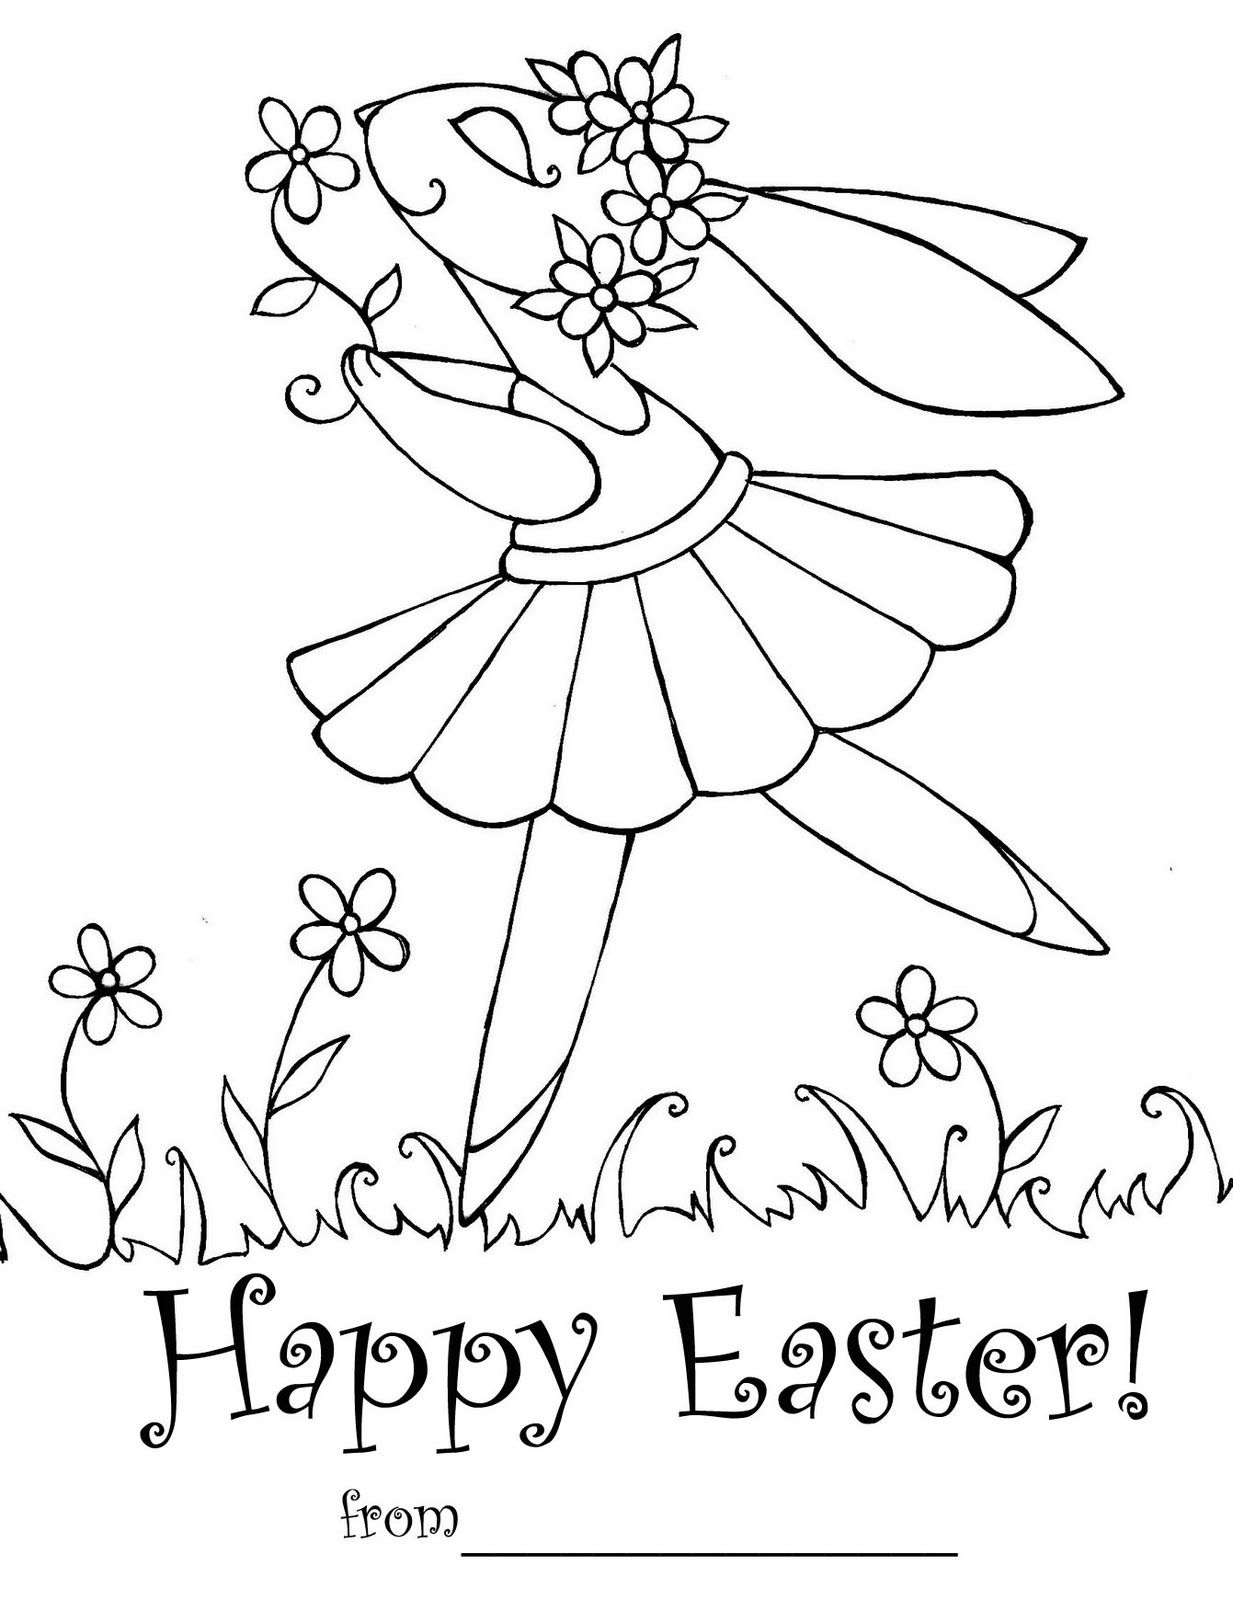 This Easter Colouring Sheet Doubles Up As An Easter Card